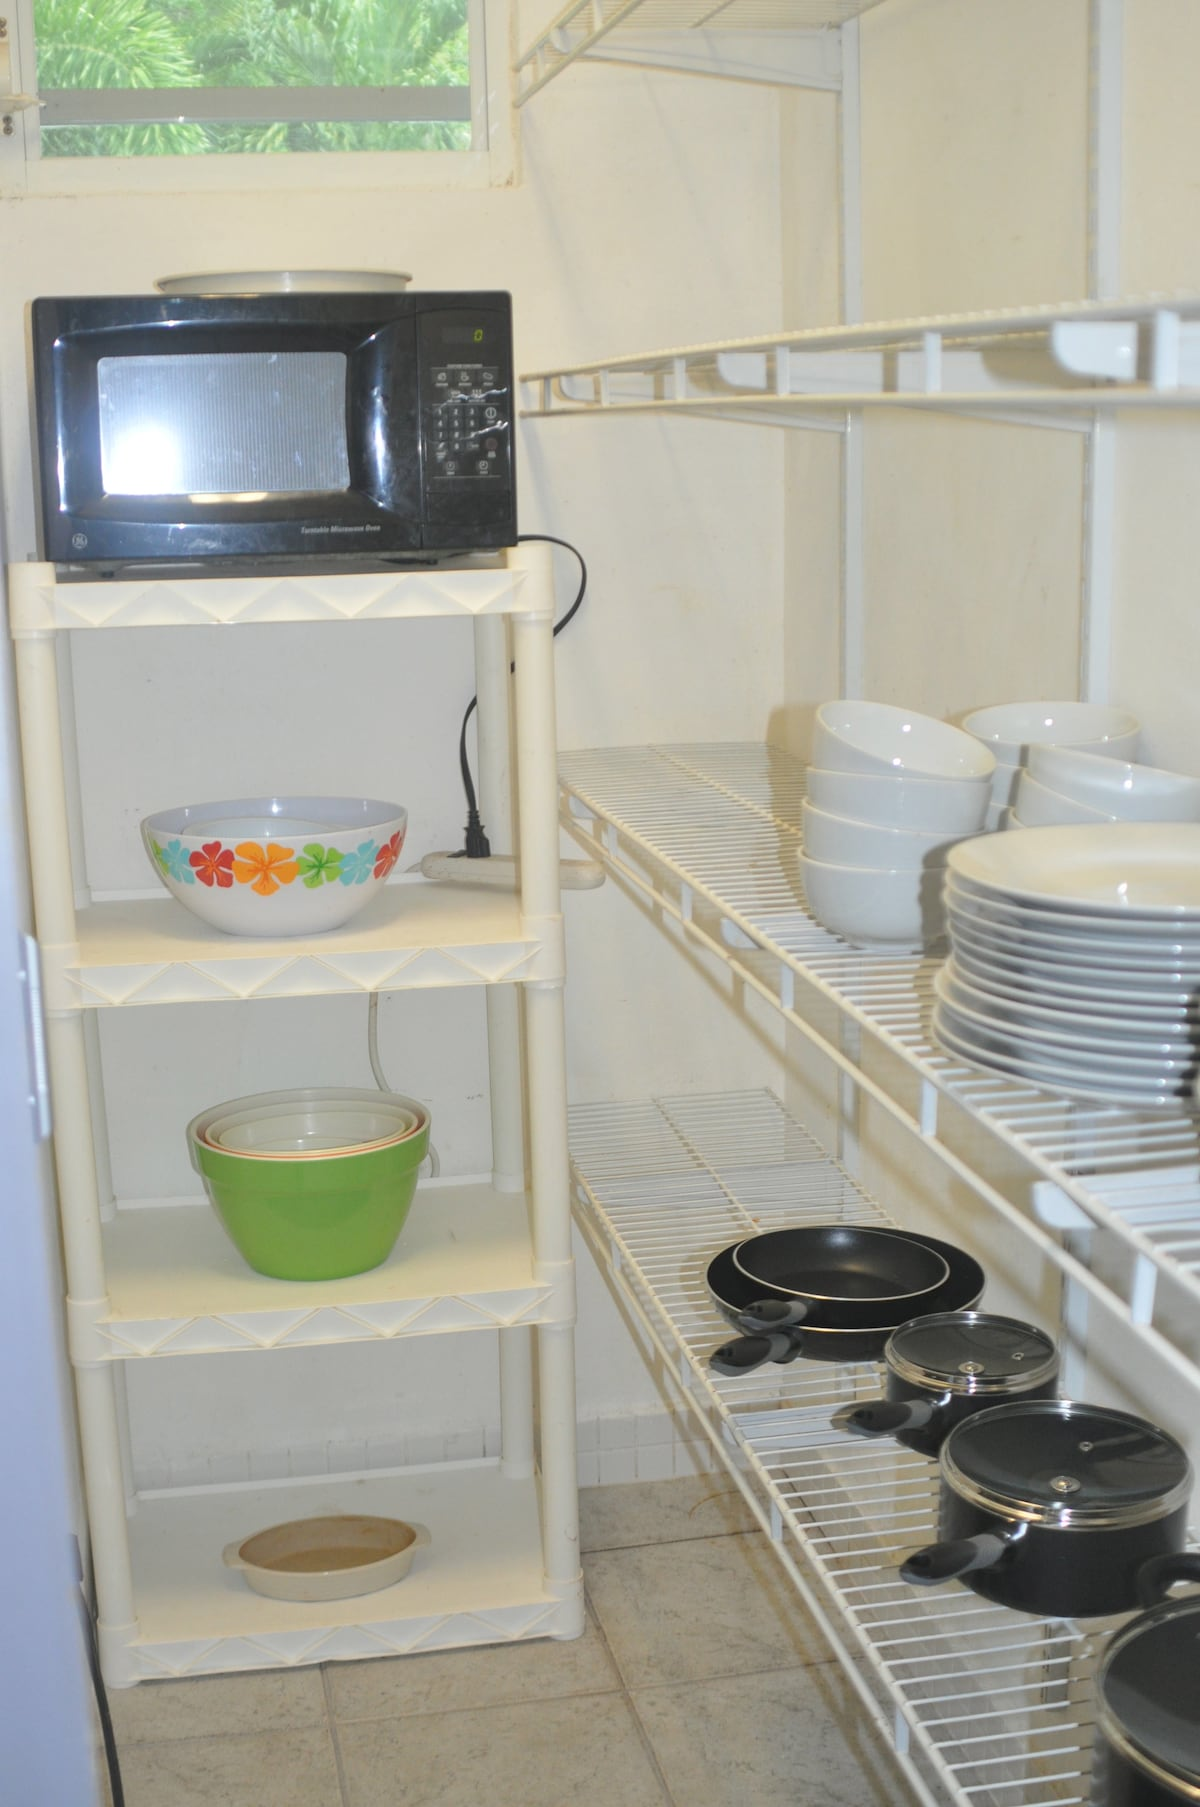 Fully stocked pantry with plates, bowls, pots and pans and a microwave